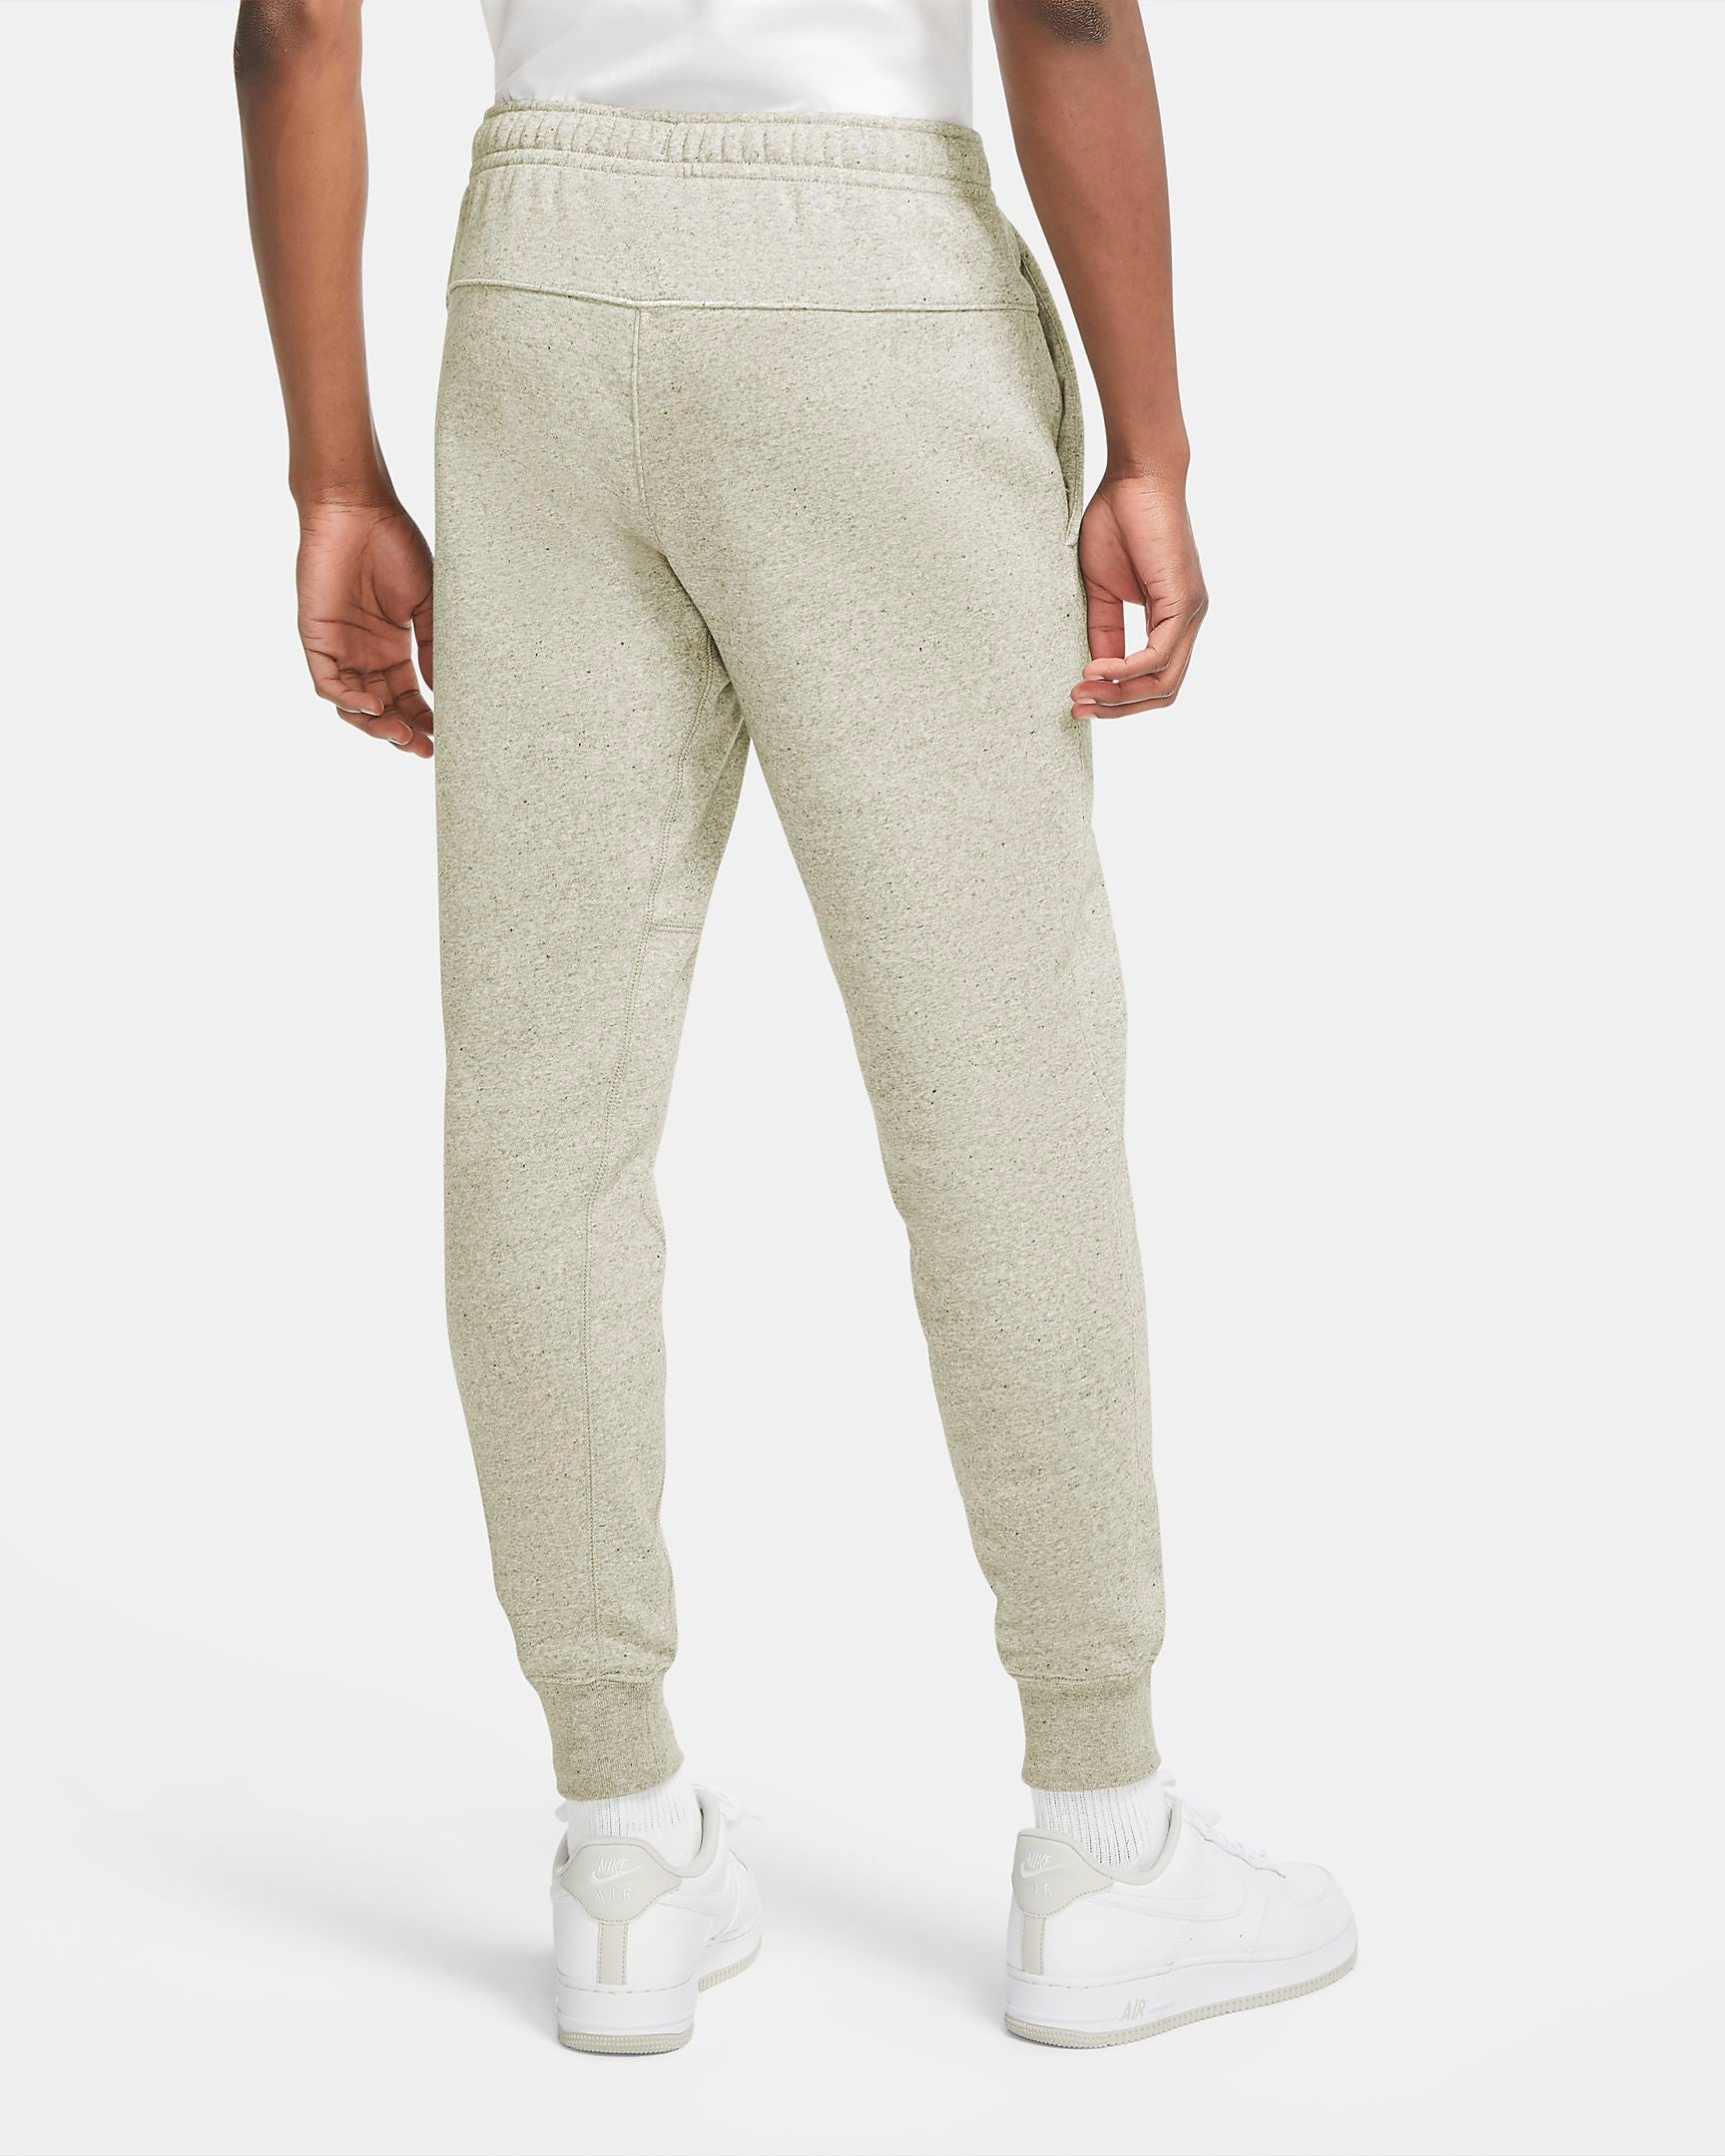 Nike Sportswear Men's Pants